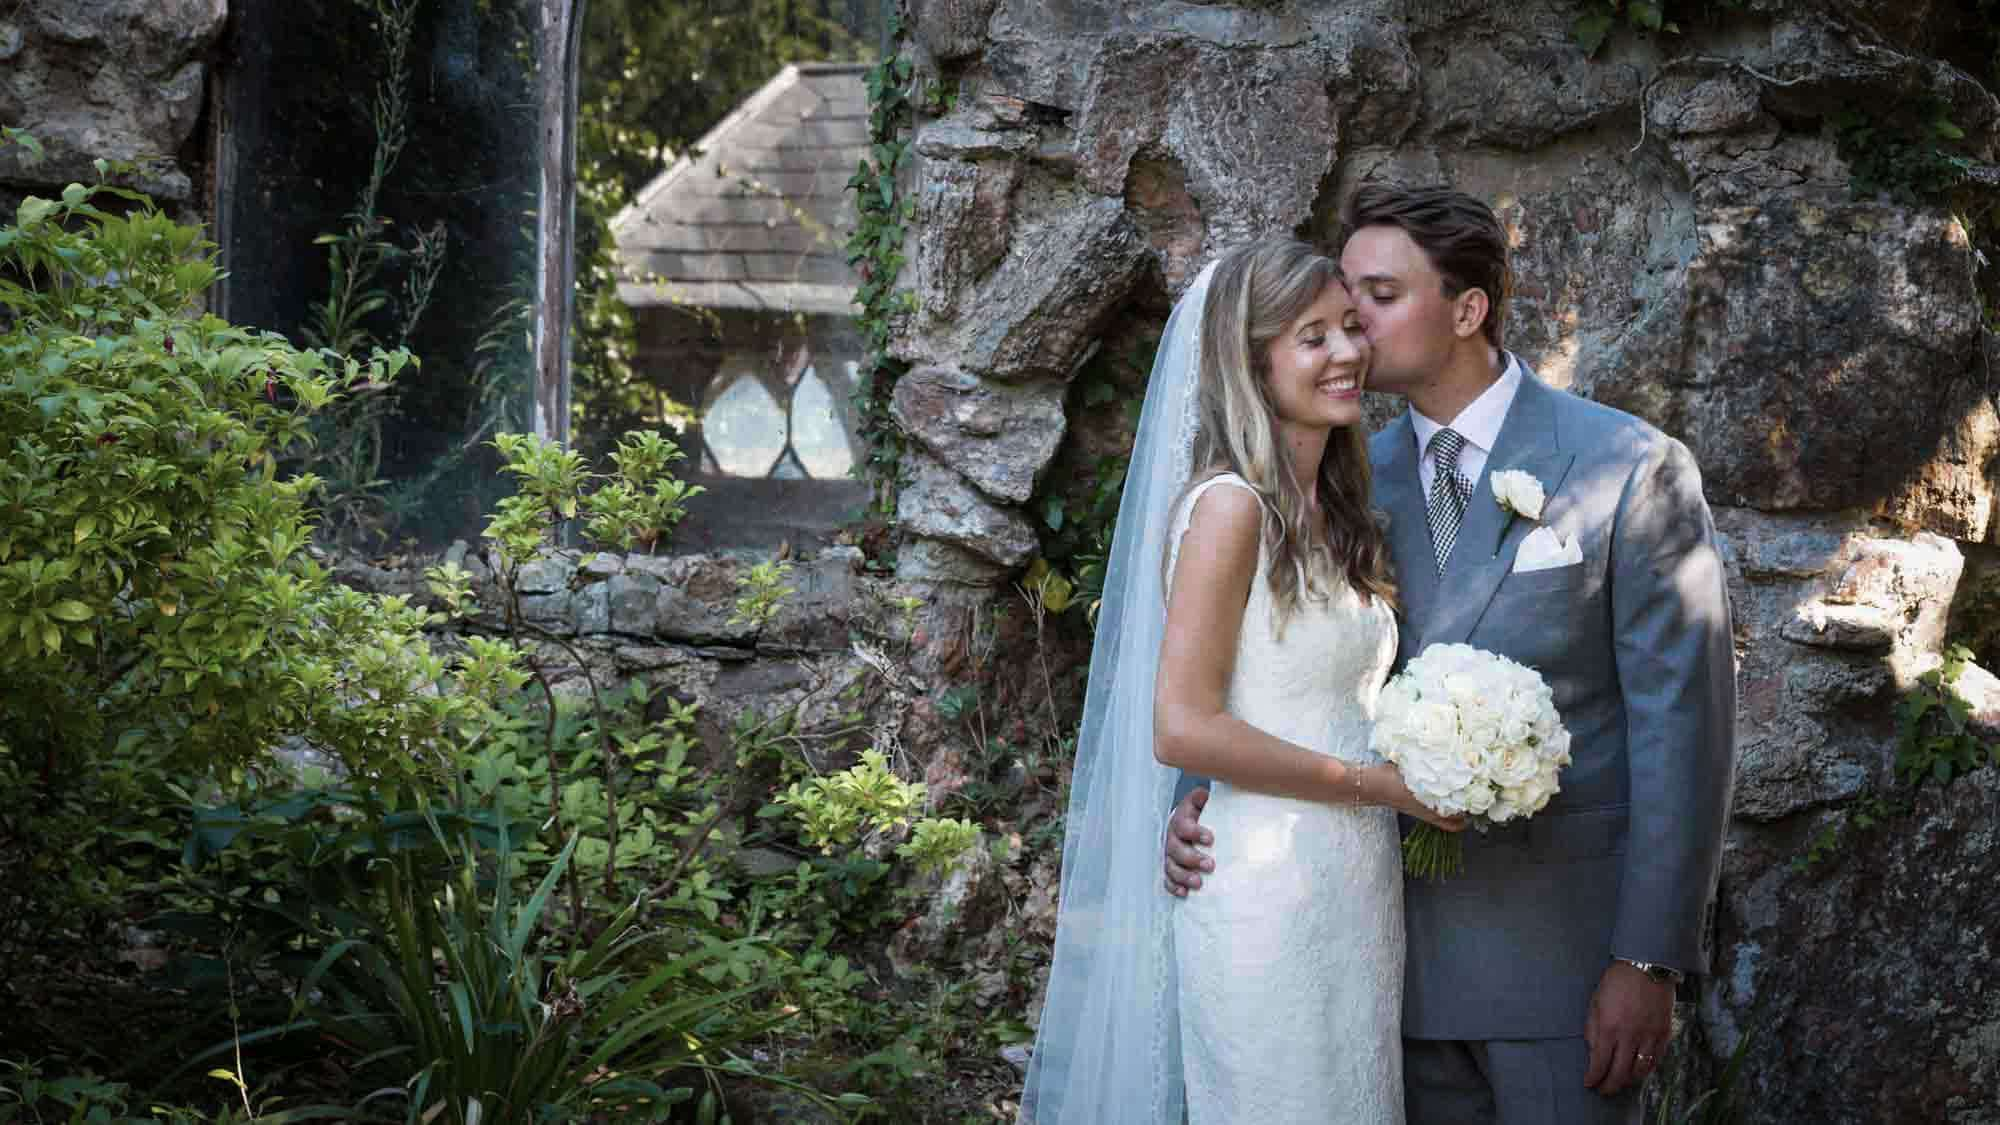 Bride and groom kiss in gardens at St Audries Park